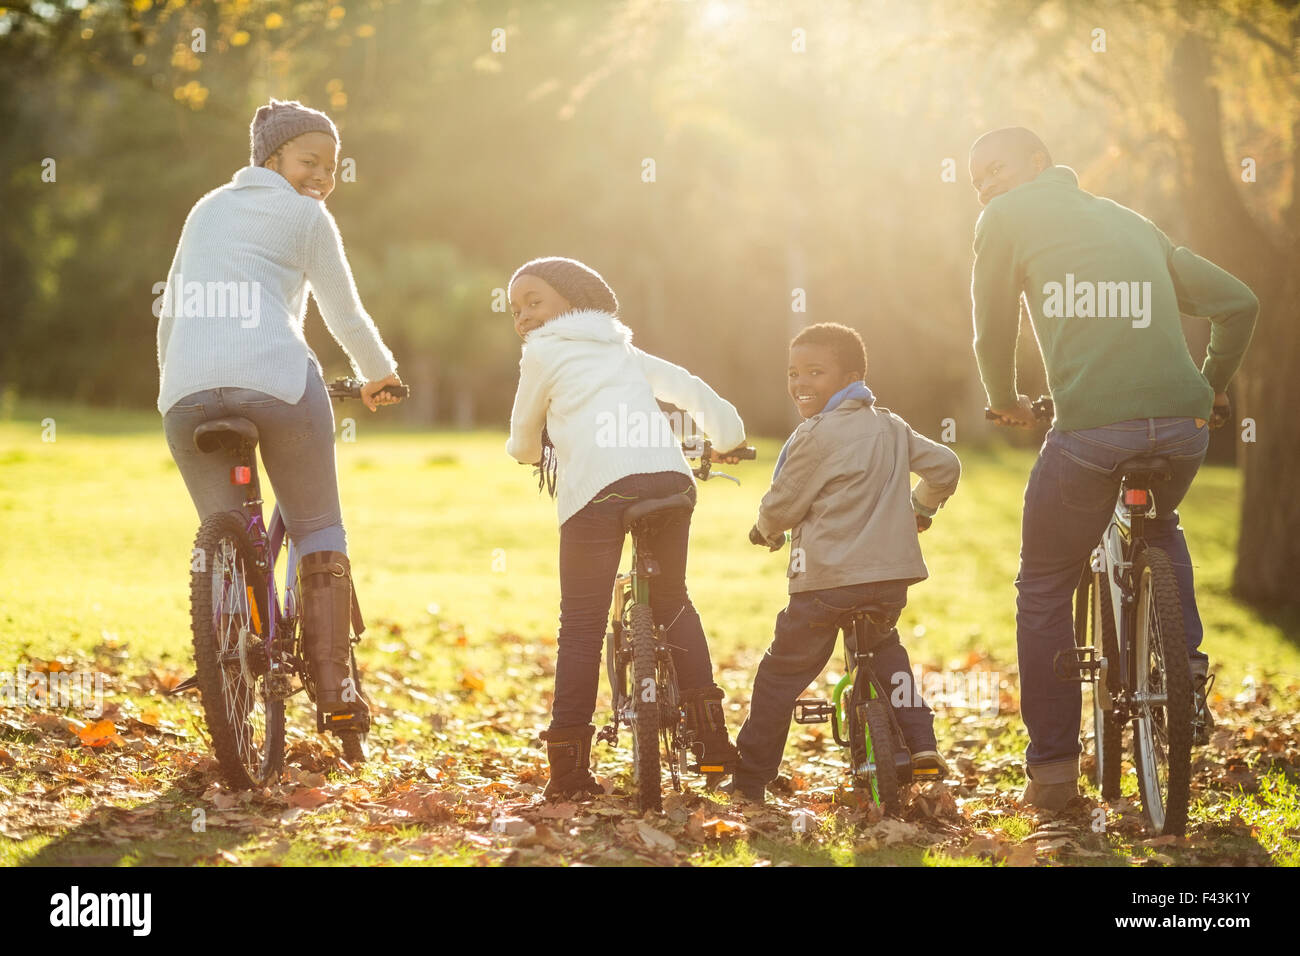 Rear view of a young family doing a bike ride - Stock Image